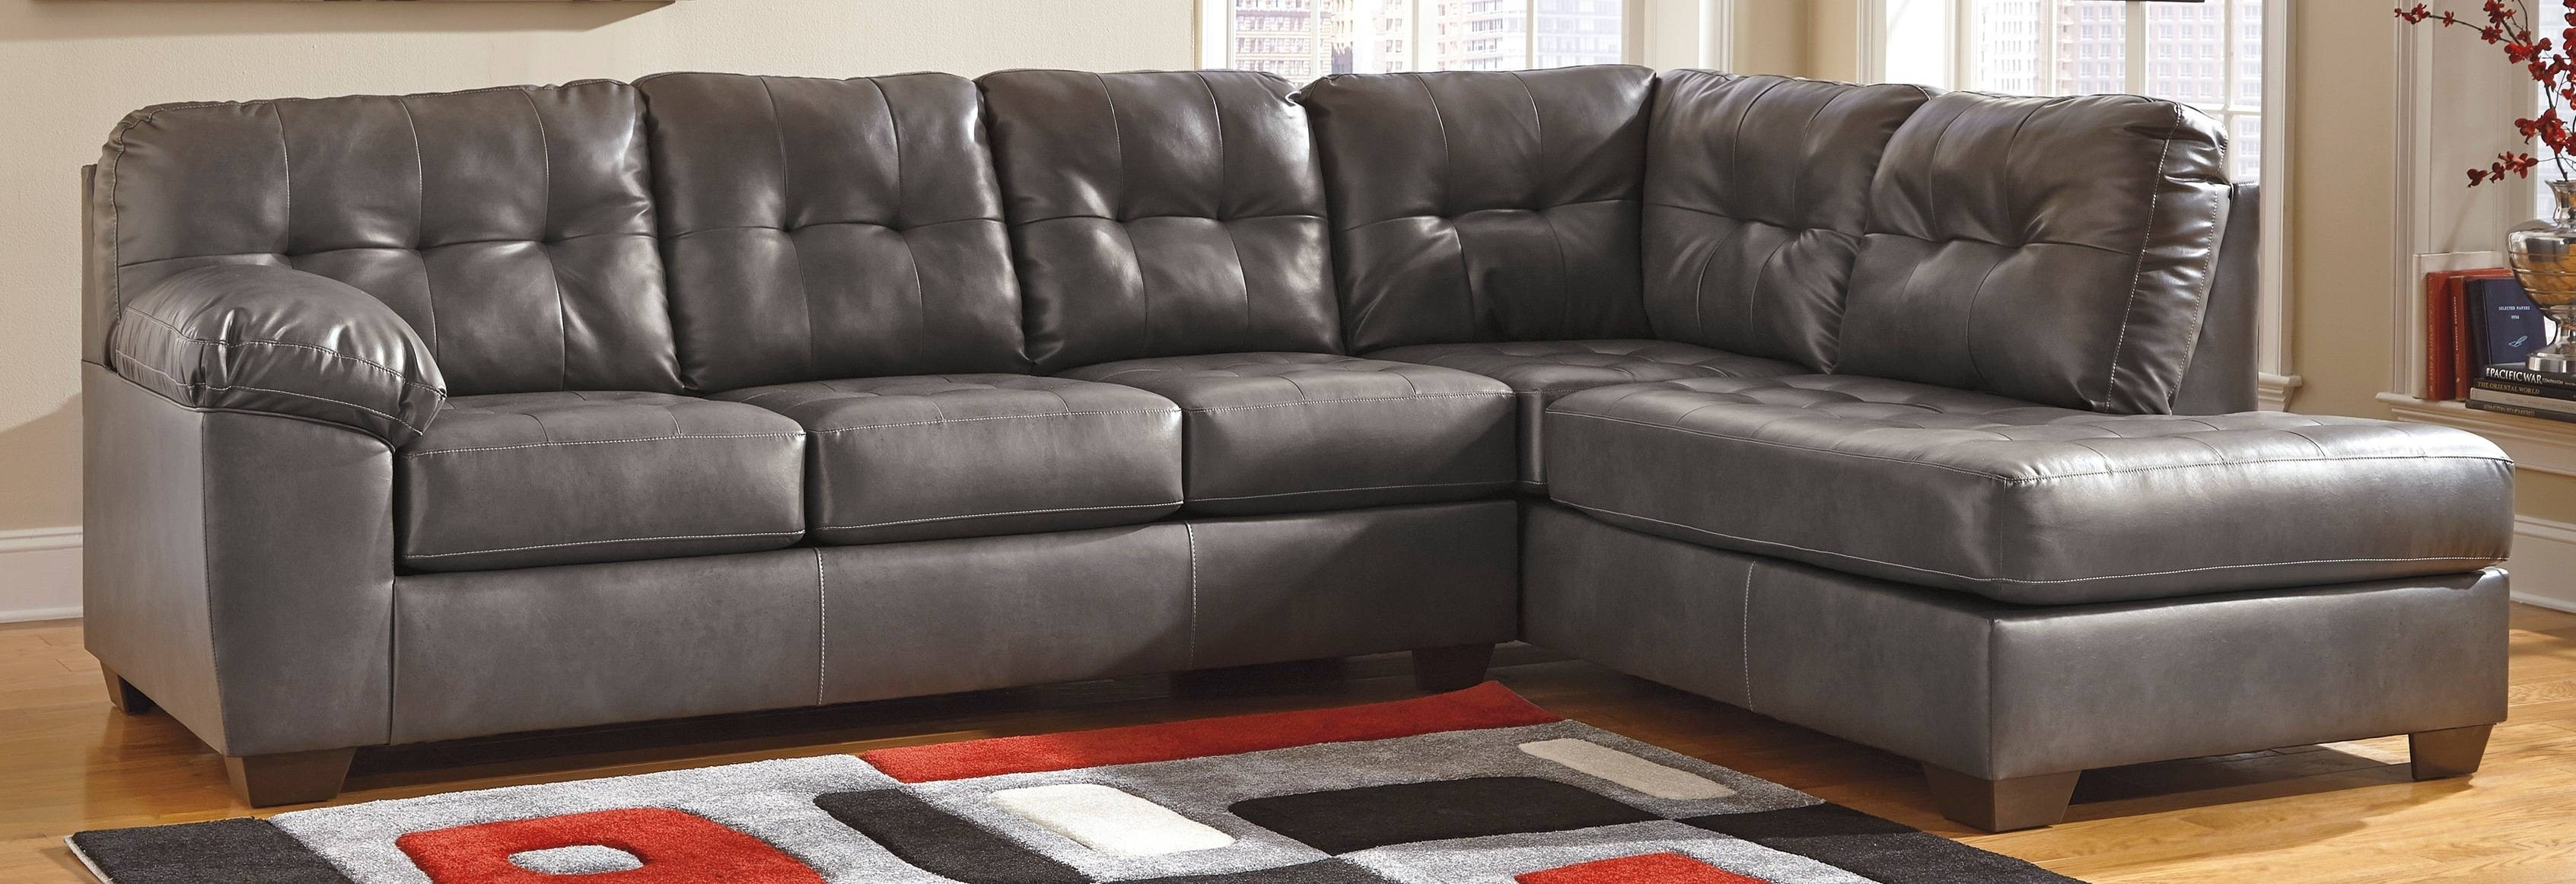 Ashley Furniture Leather Sectional Sofa 92 With Ashley Furniture for Ashley Furniture Leather Sectional Sofas (Image 4 of 15)